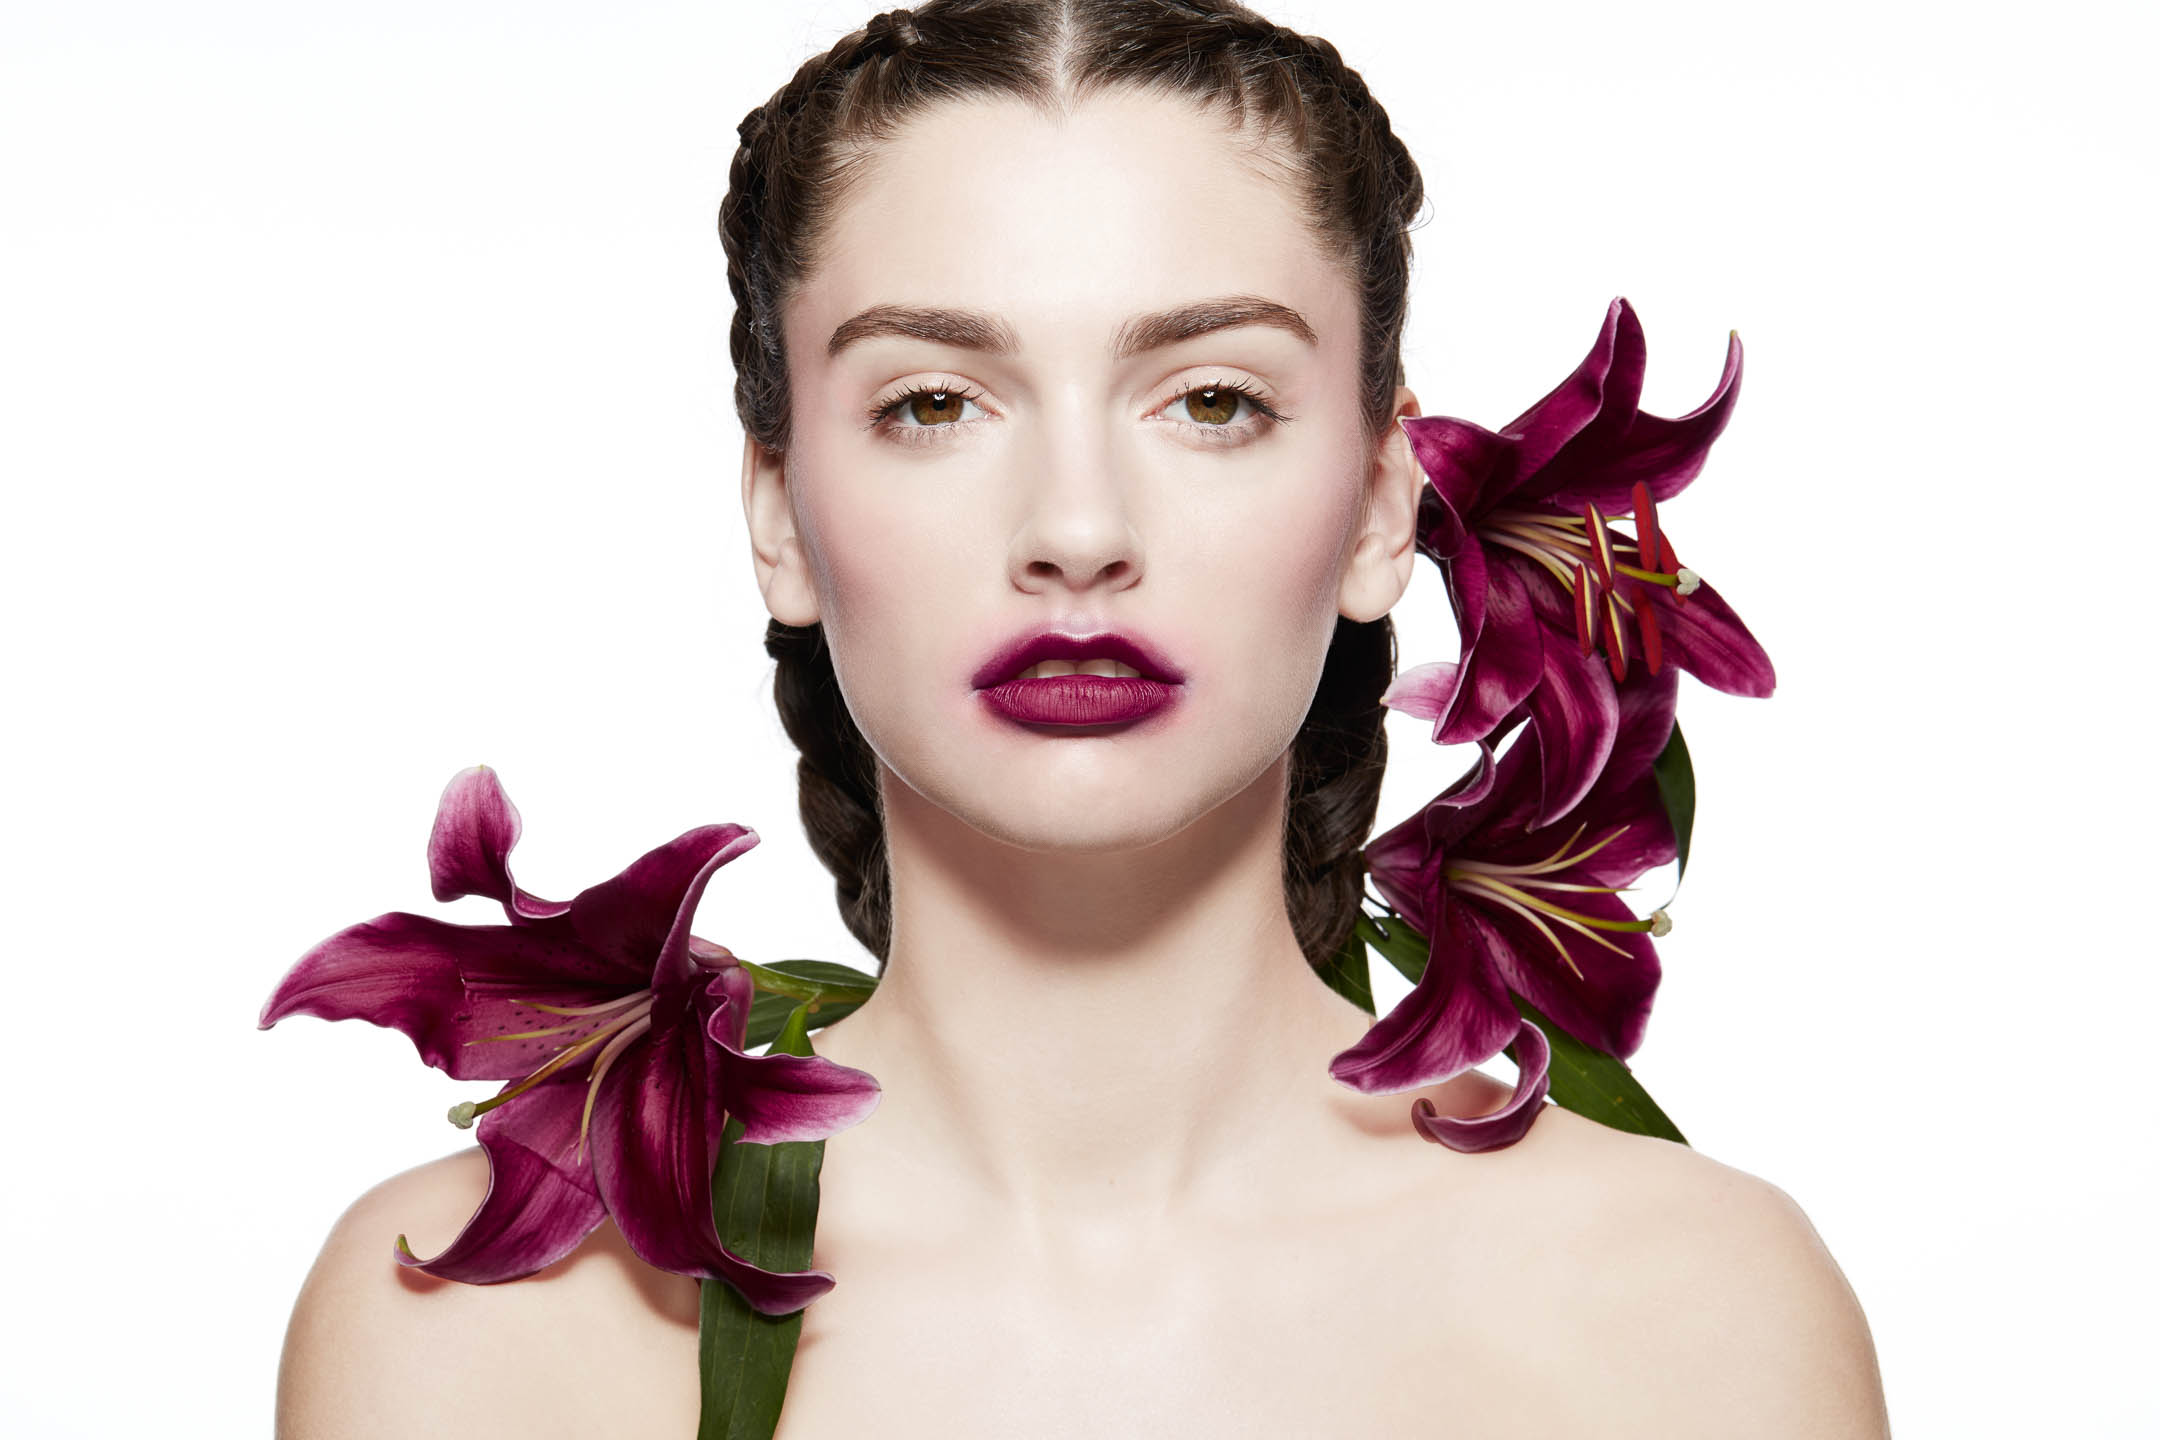 Model with Flowers